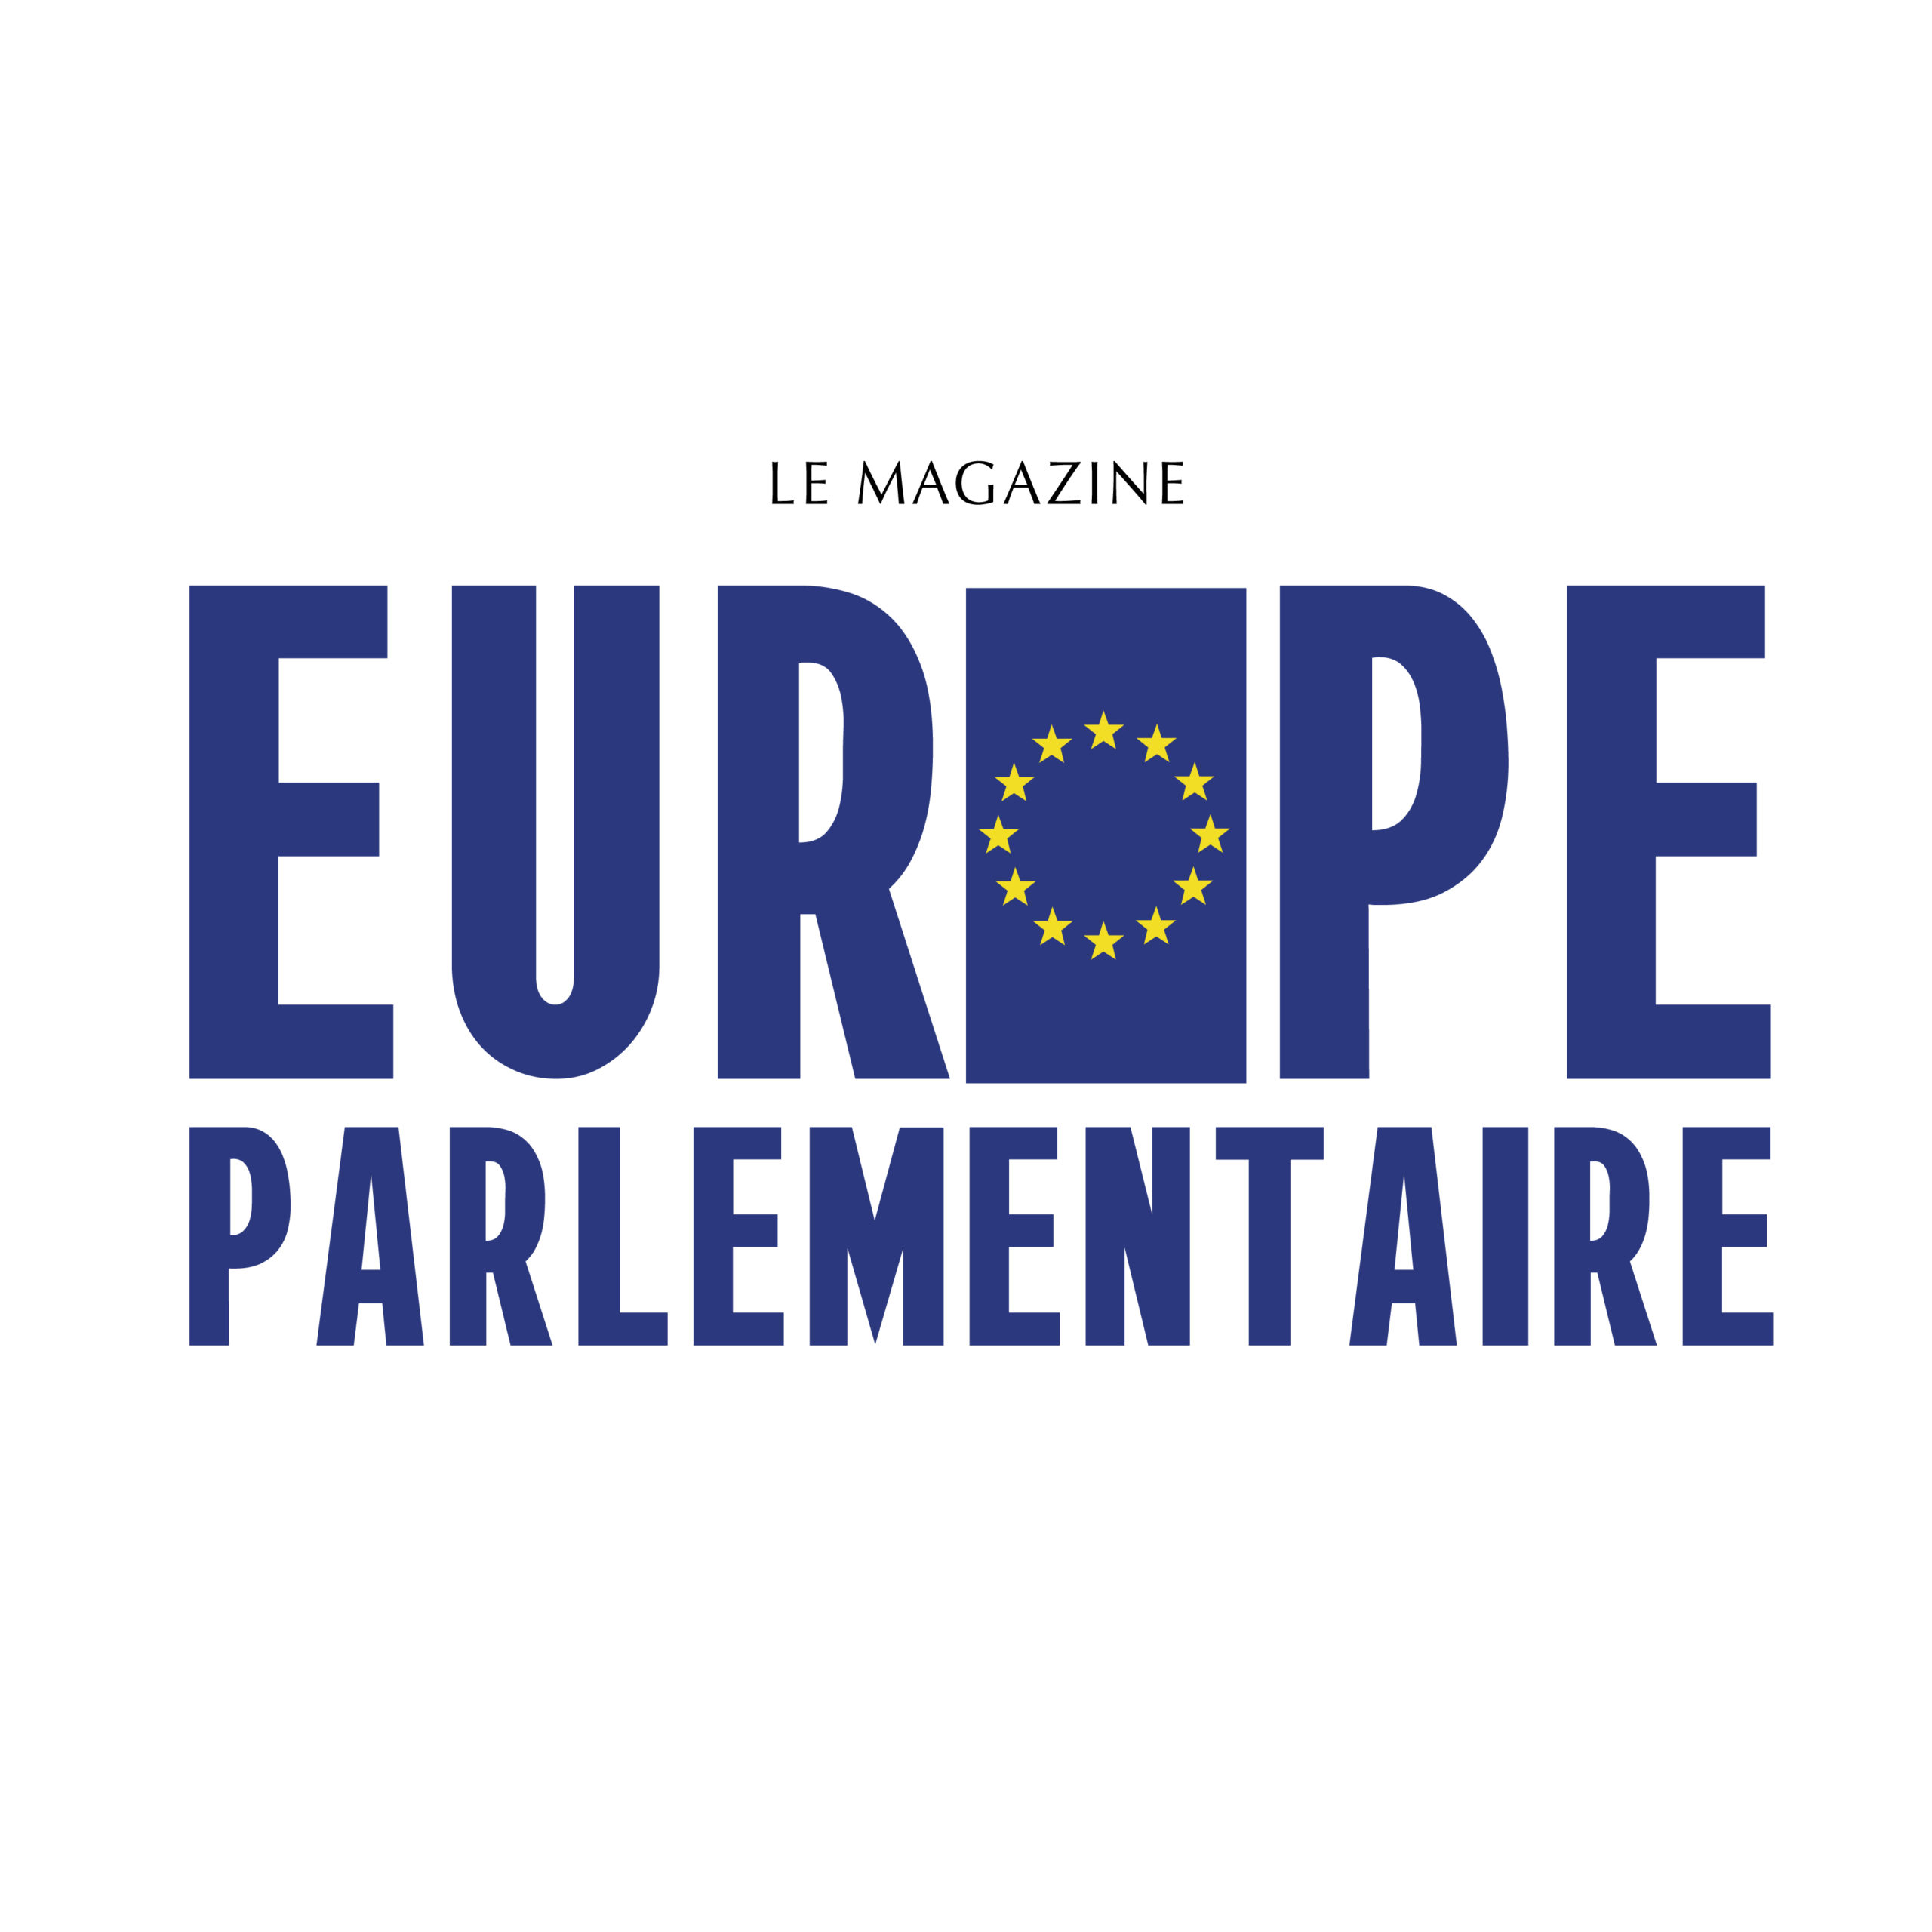 Europe parlementaire